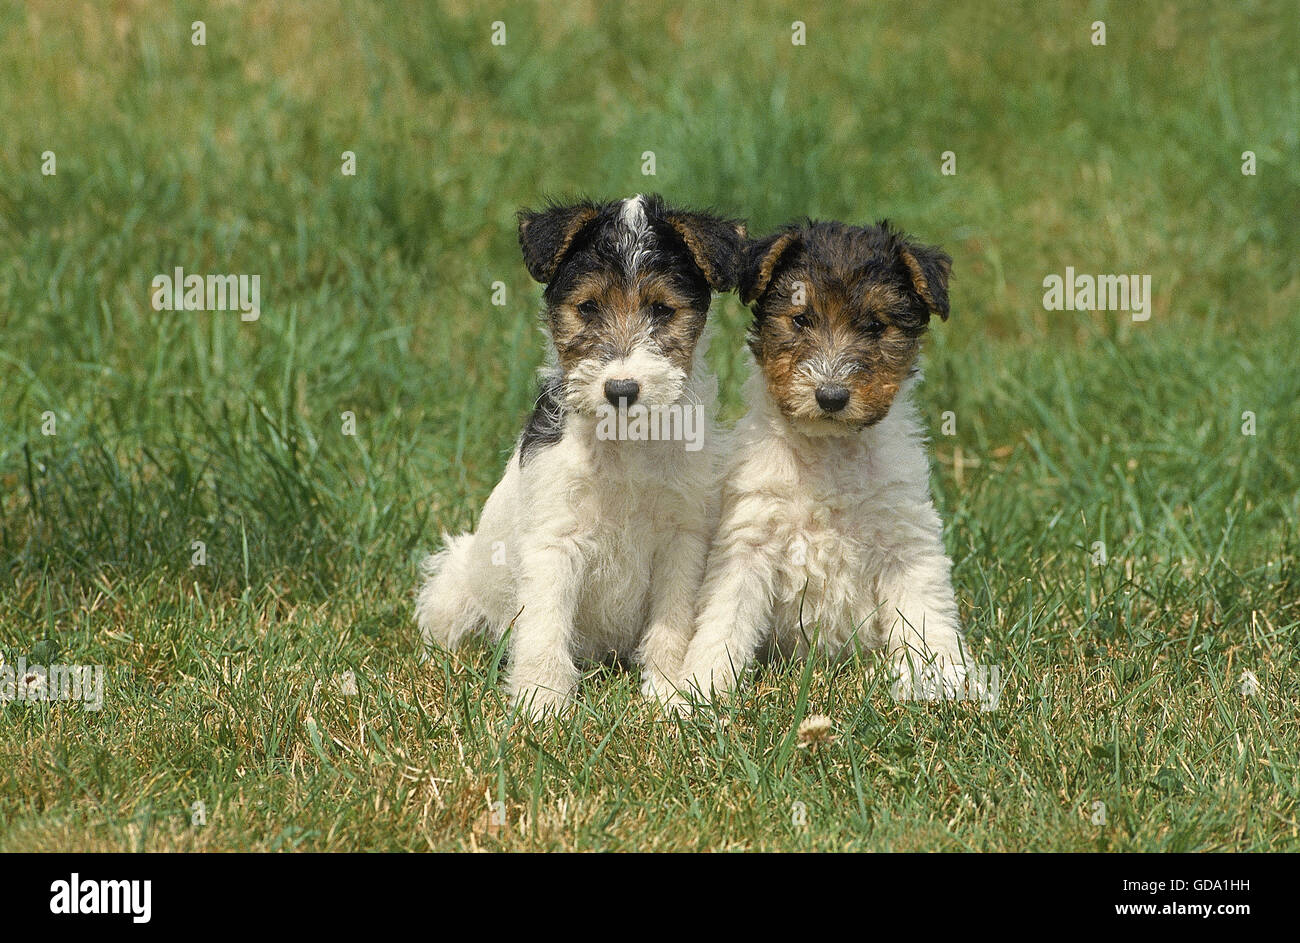 Magnificent Wirehaired Terrier Dogs Pictures Inspiration - The ...